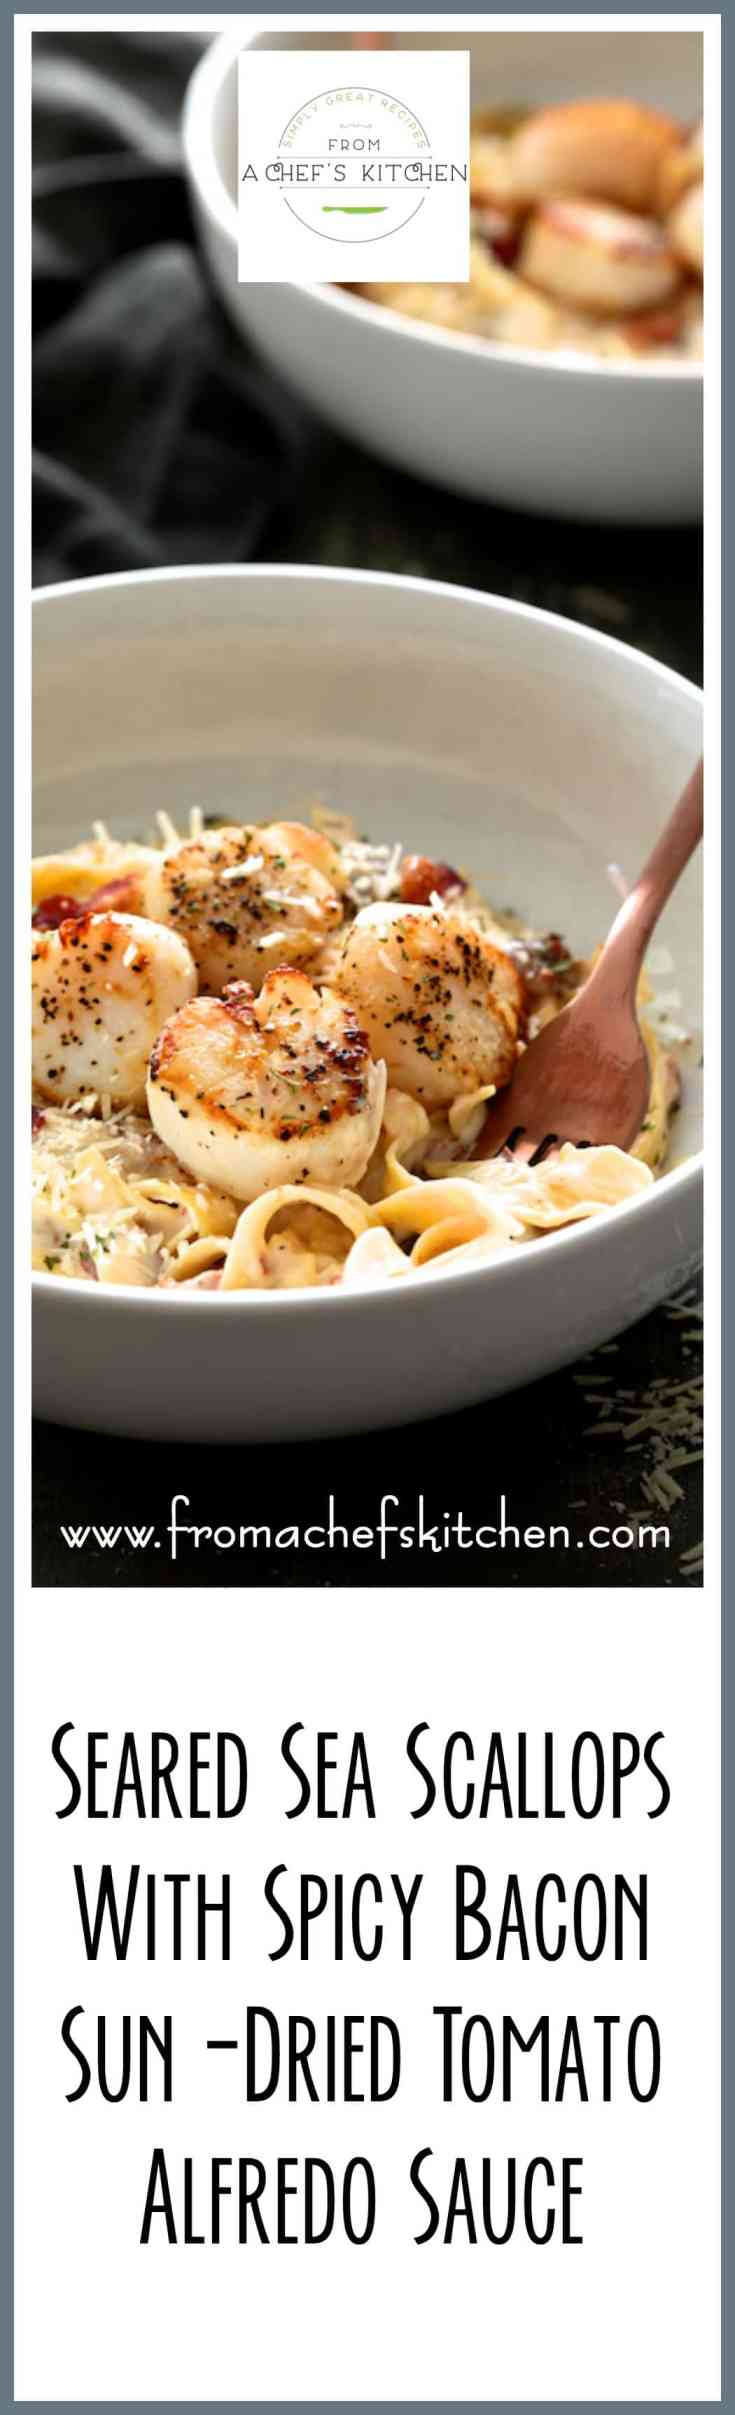 #Ad #Bertolli Organic - Seared Sea Scallops with Spicy Bacon Sun-Dried Tomato Alfredo Sauce is easy and perfect for an Italian-inspired romantic dinner for two! @Bertolli